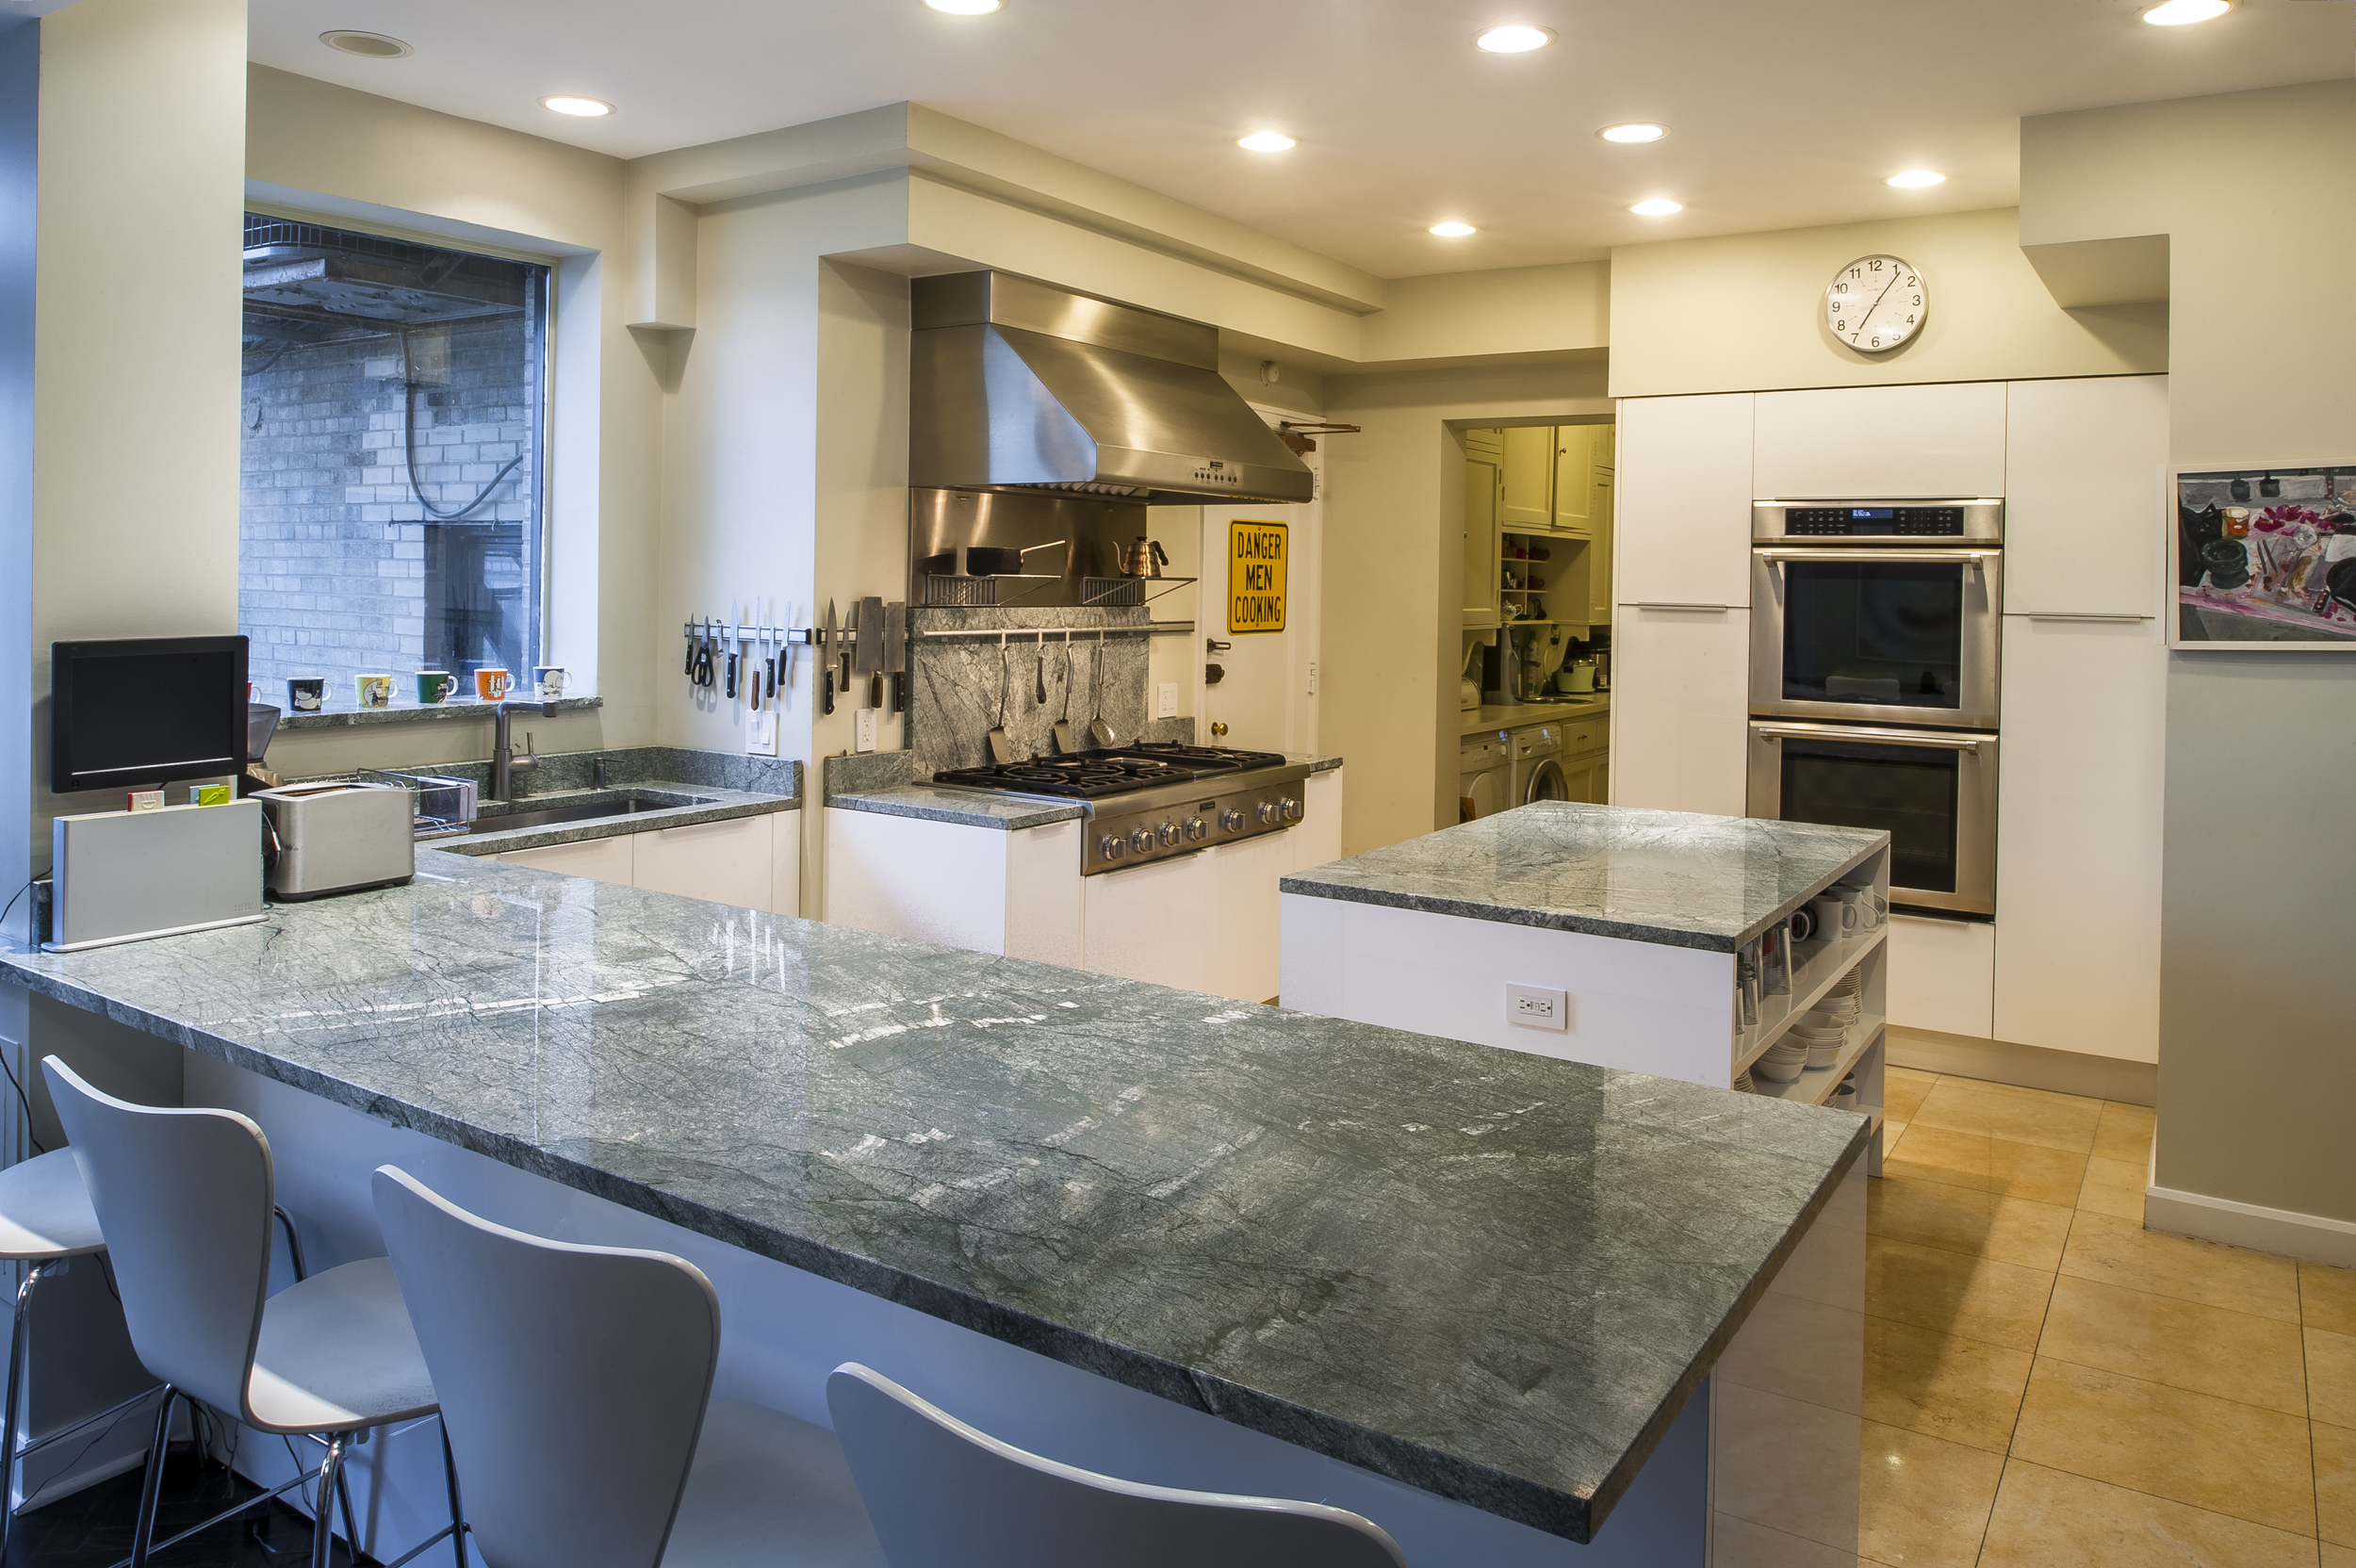 Blue Stone Countertop Islands How To Make Your Kitchen Your Kitchen Blue Pearl Stone